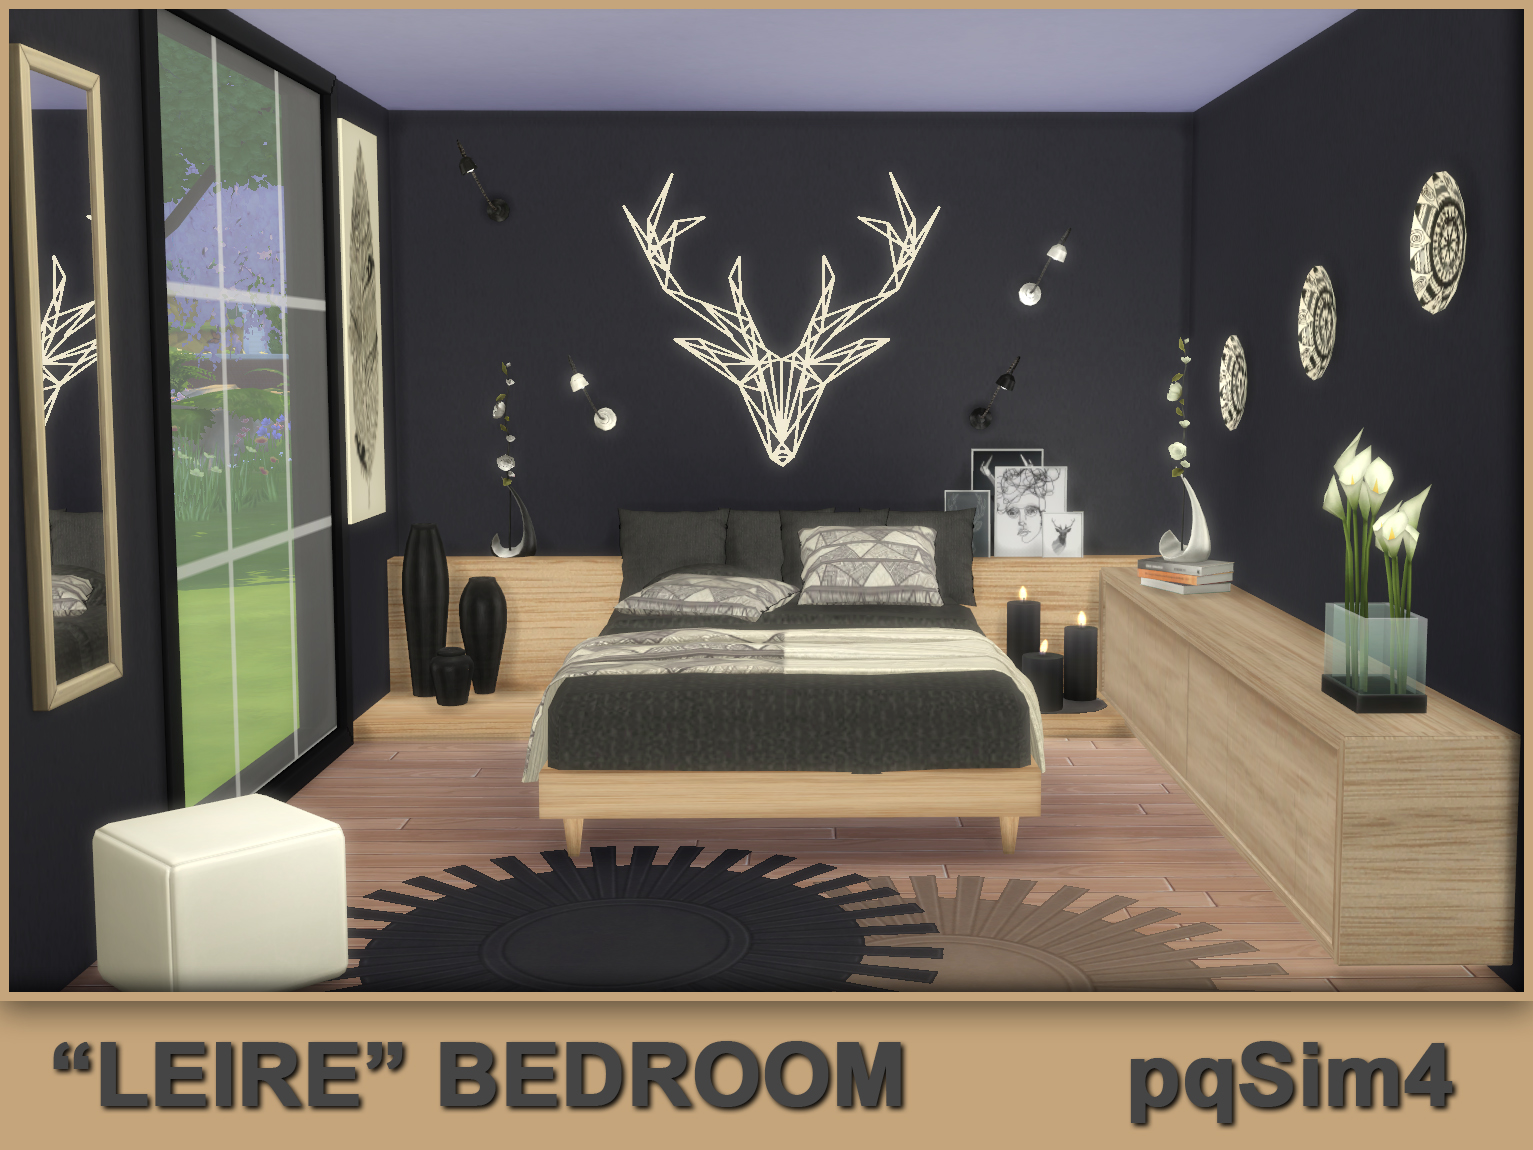 Leire bedroom sims 4 custom content for Four bedroom